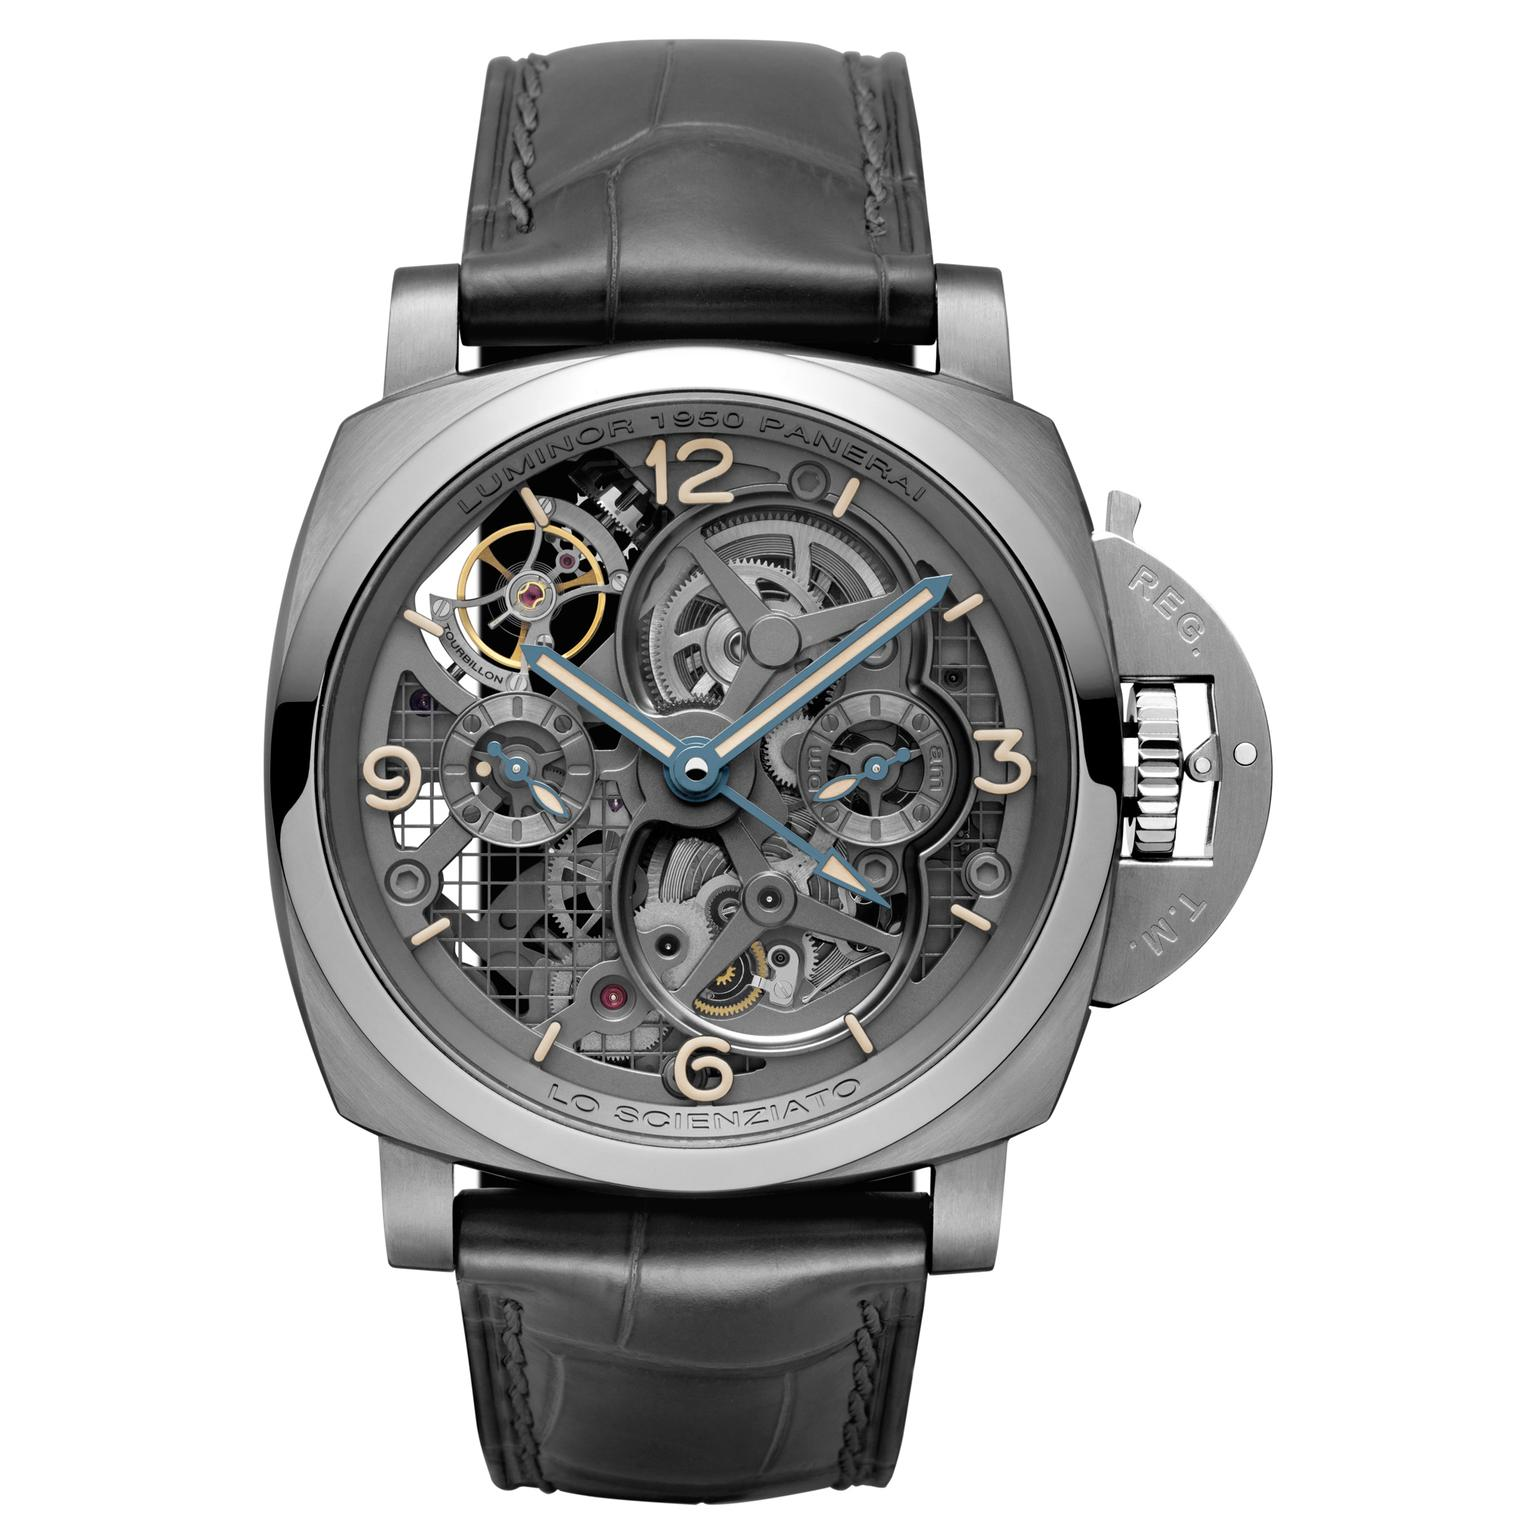 PANERAI Lo Scienziato watch